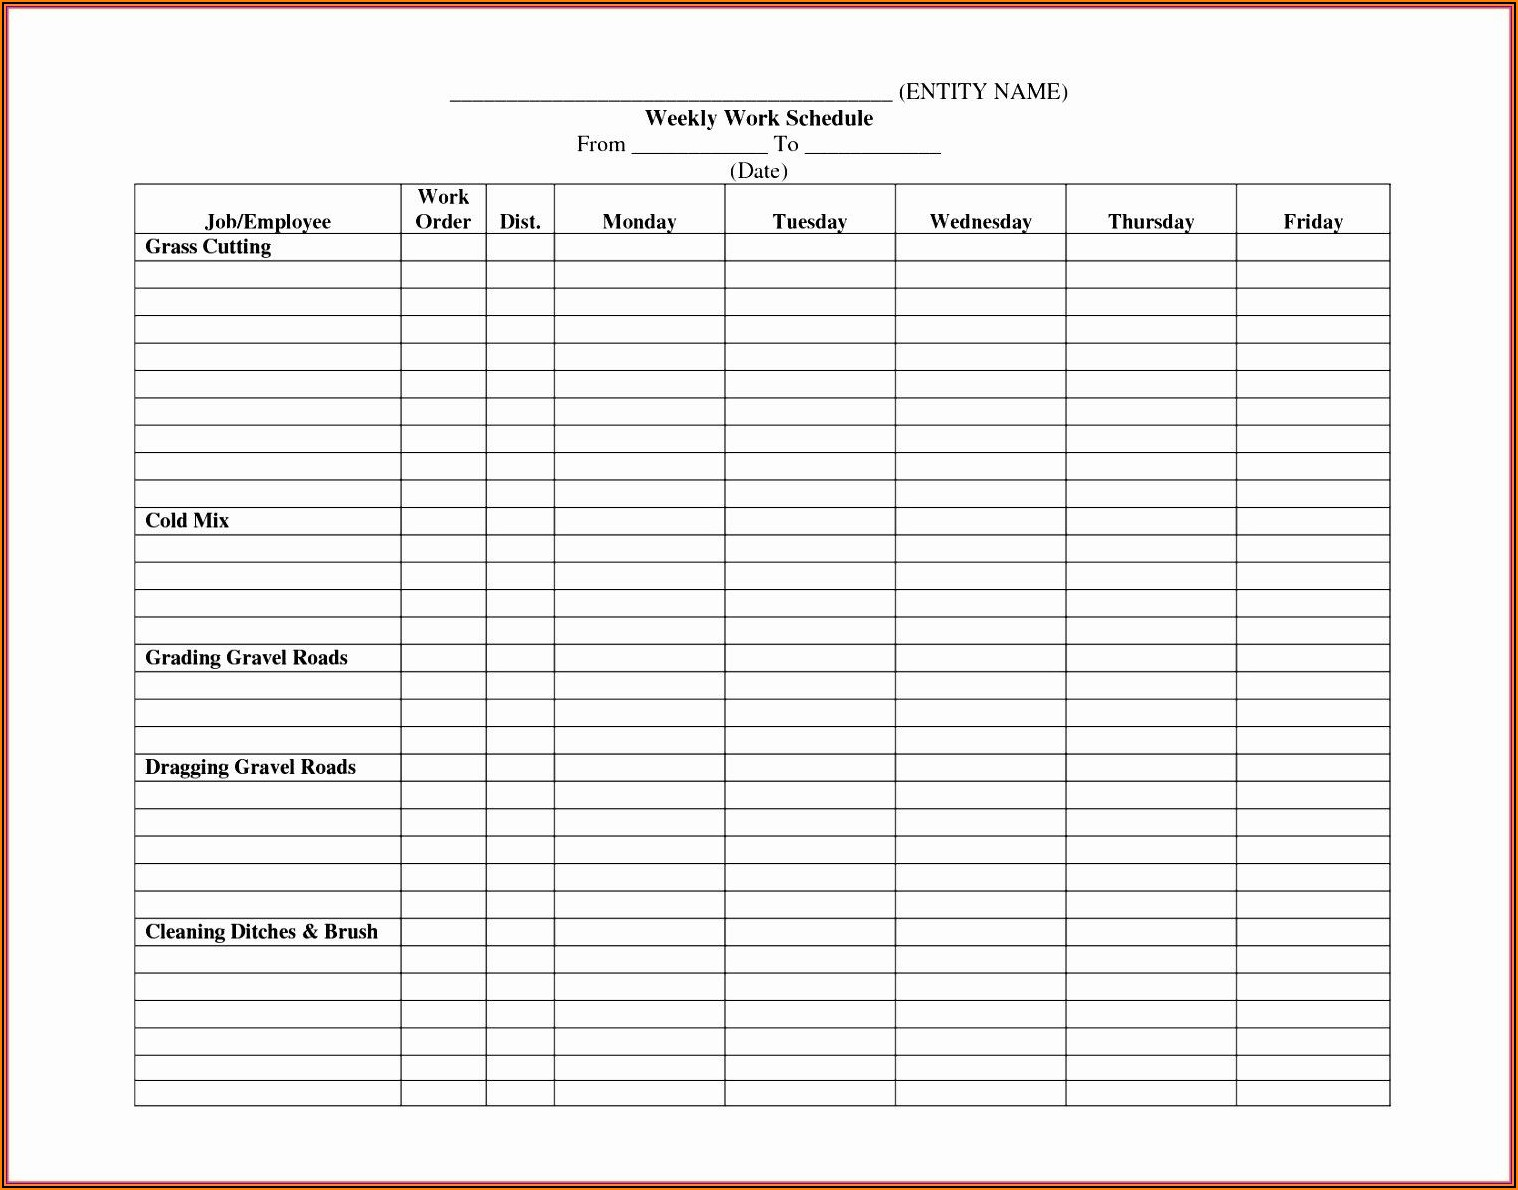 Staffing Schedule Template